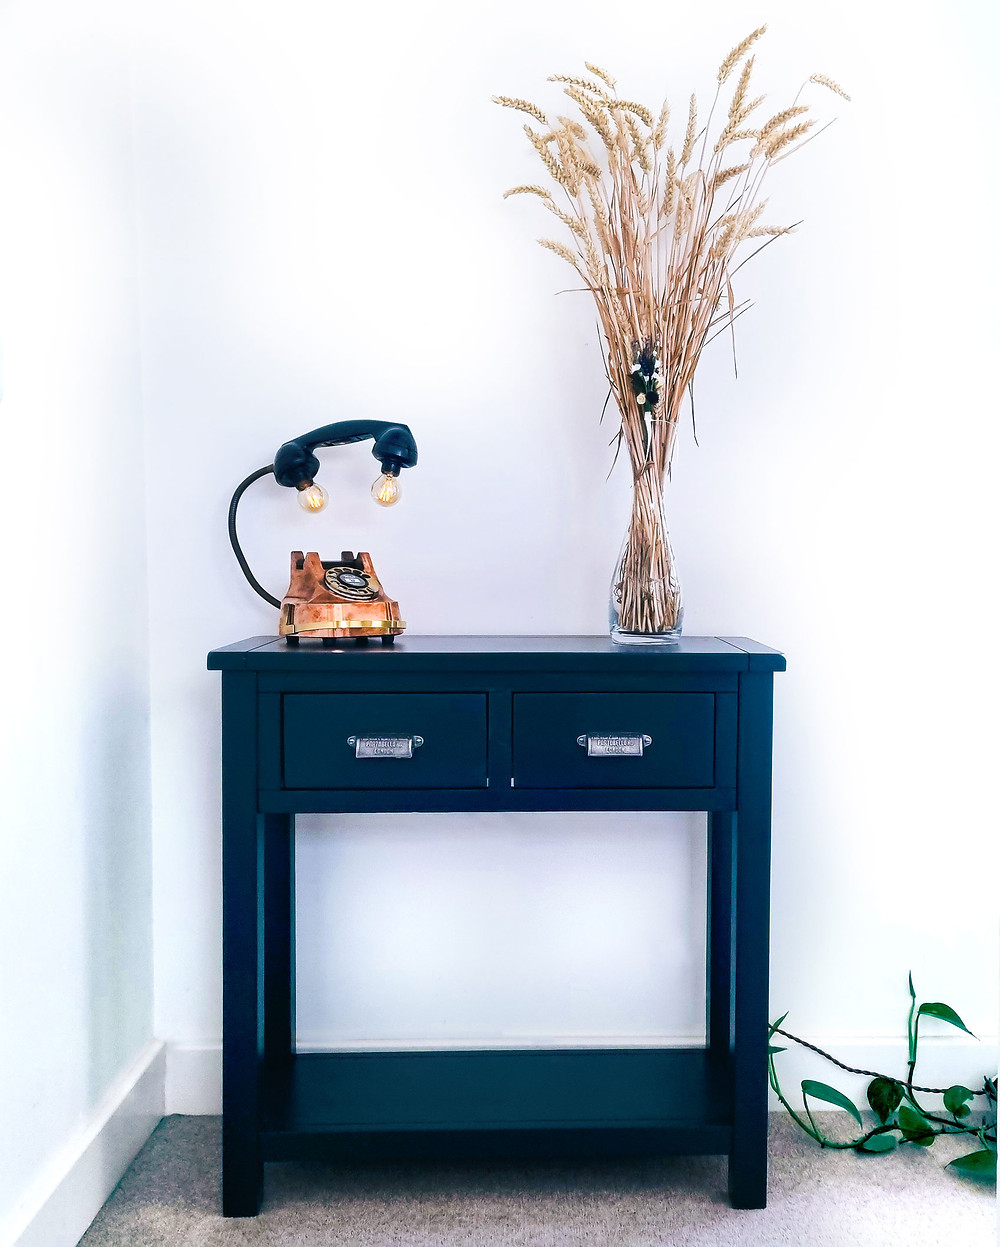 Upcycled Console Table repainted in Farrow & Ball Railings No.31